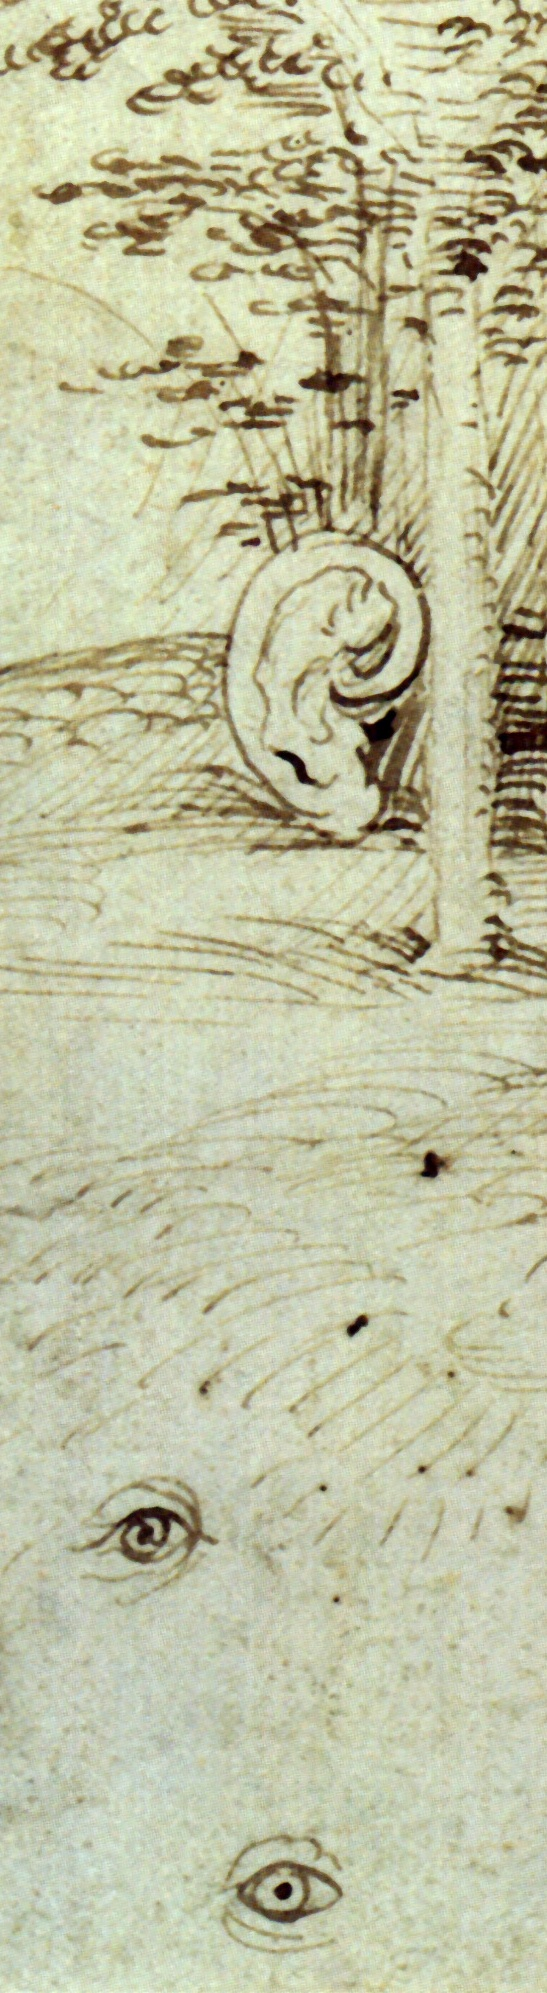 The_Trees_Have_Ears_and_the_Field_Has_Eyes_by_Hieronymus_Bosch.jpg